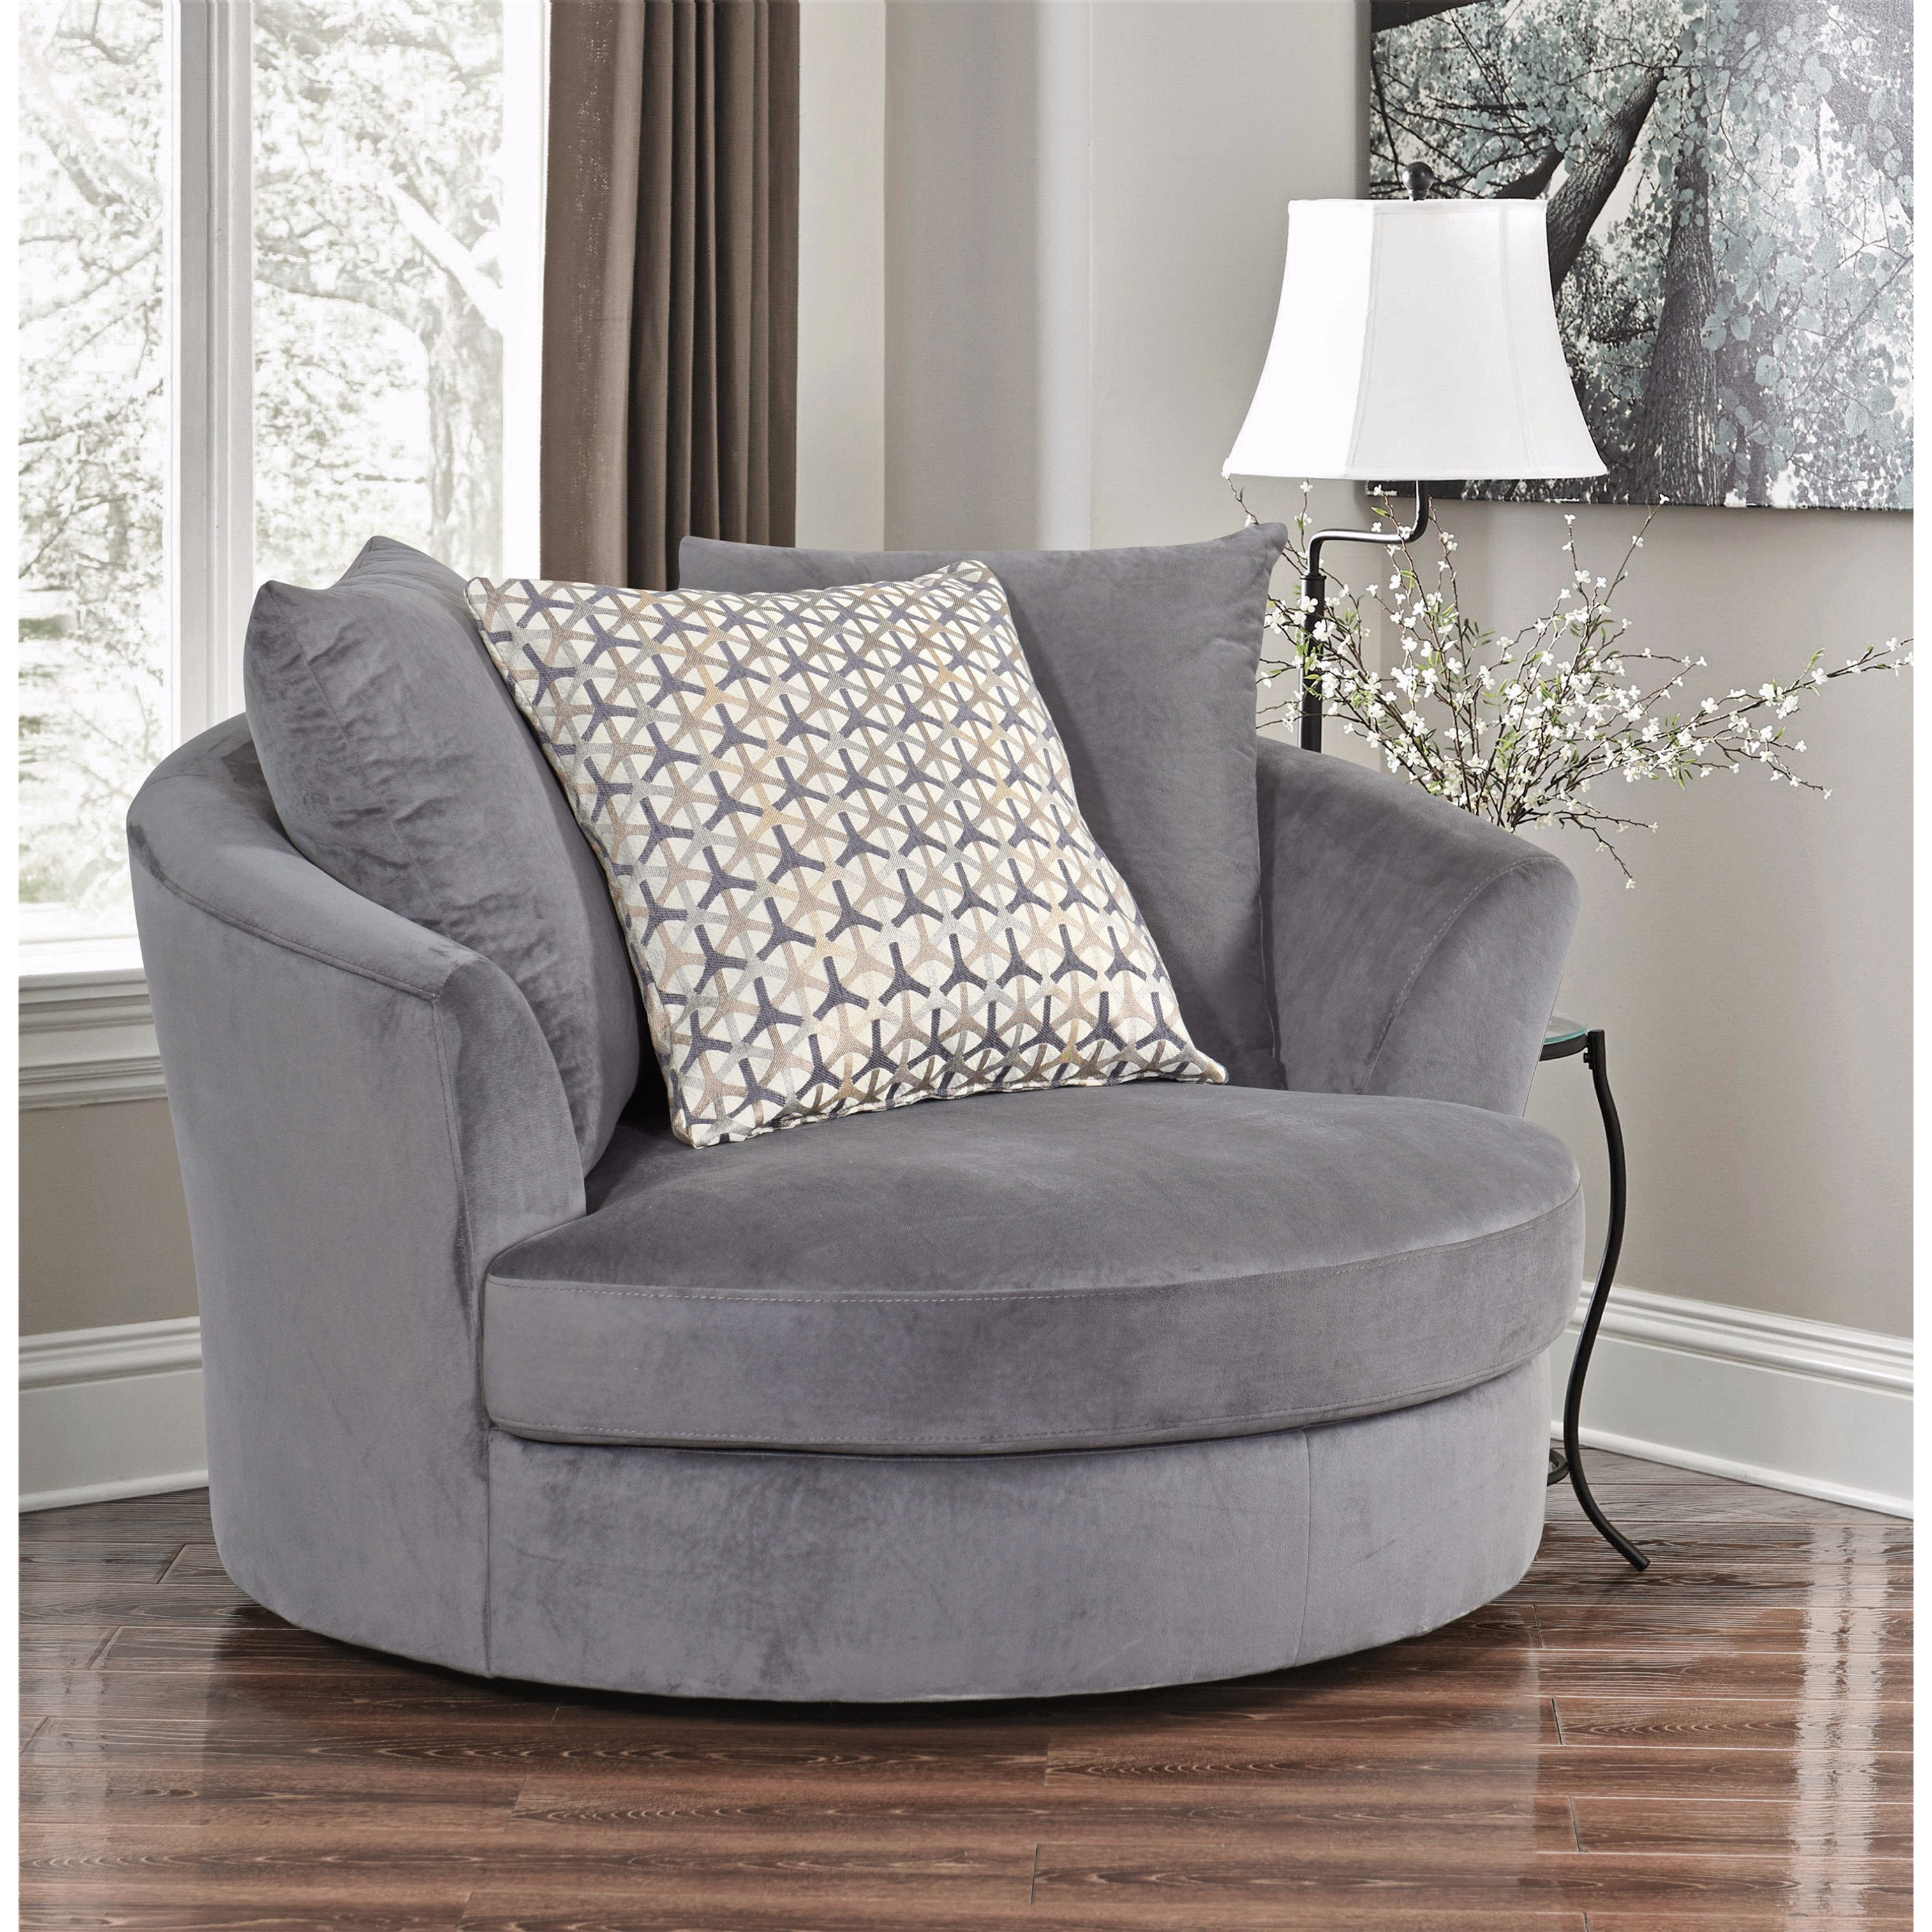 Attrayant Shop Abbyson Tanya Grey Fabric Round Swivel Chair   Free Shipping Today    Overstock.com   14466098